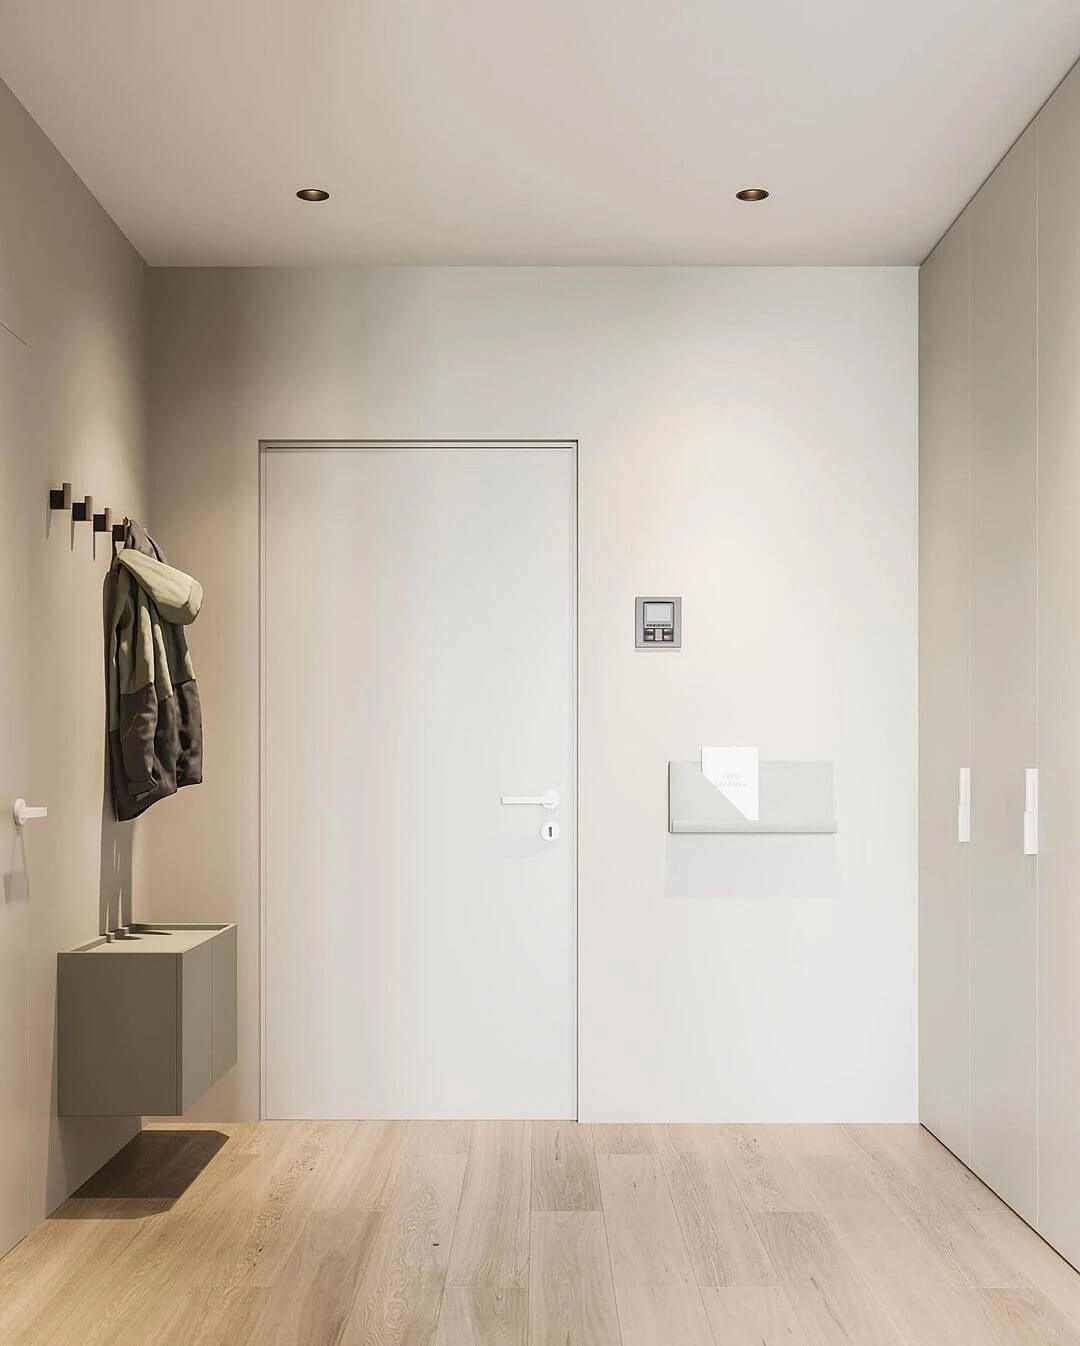 22. An interior built on minimalism in shades and details